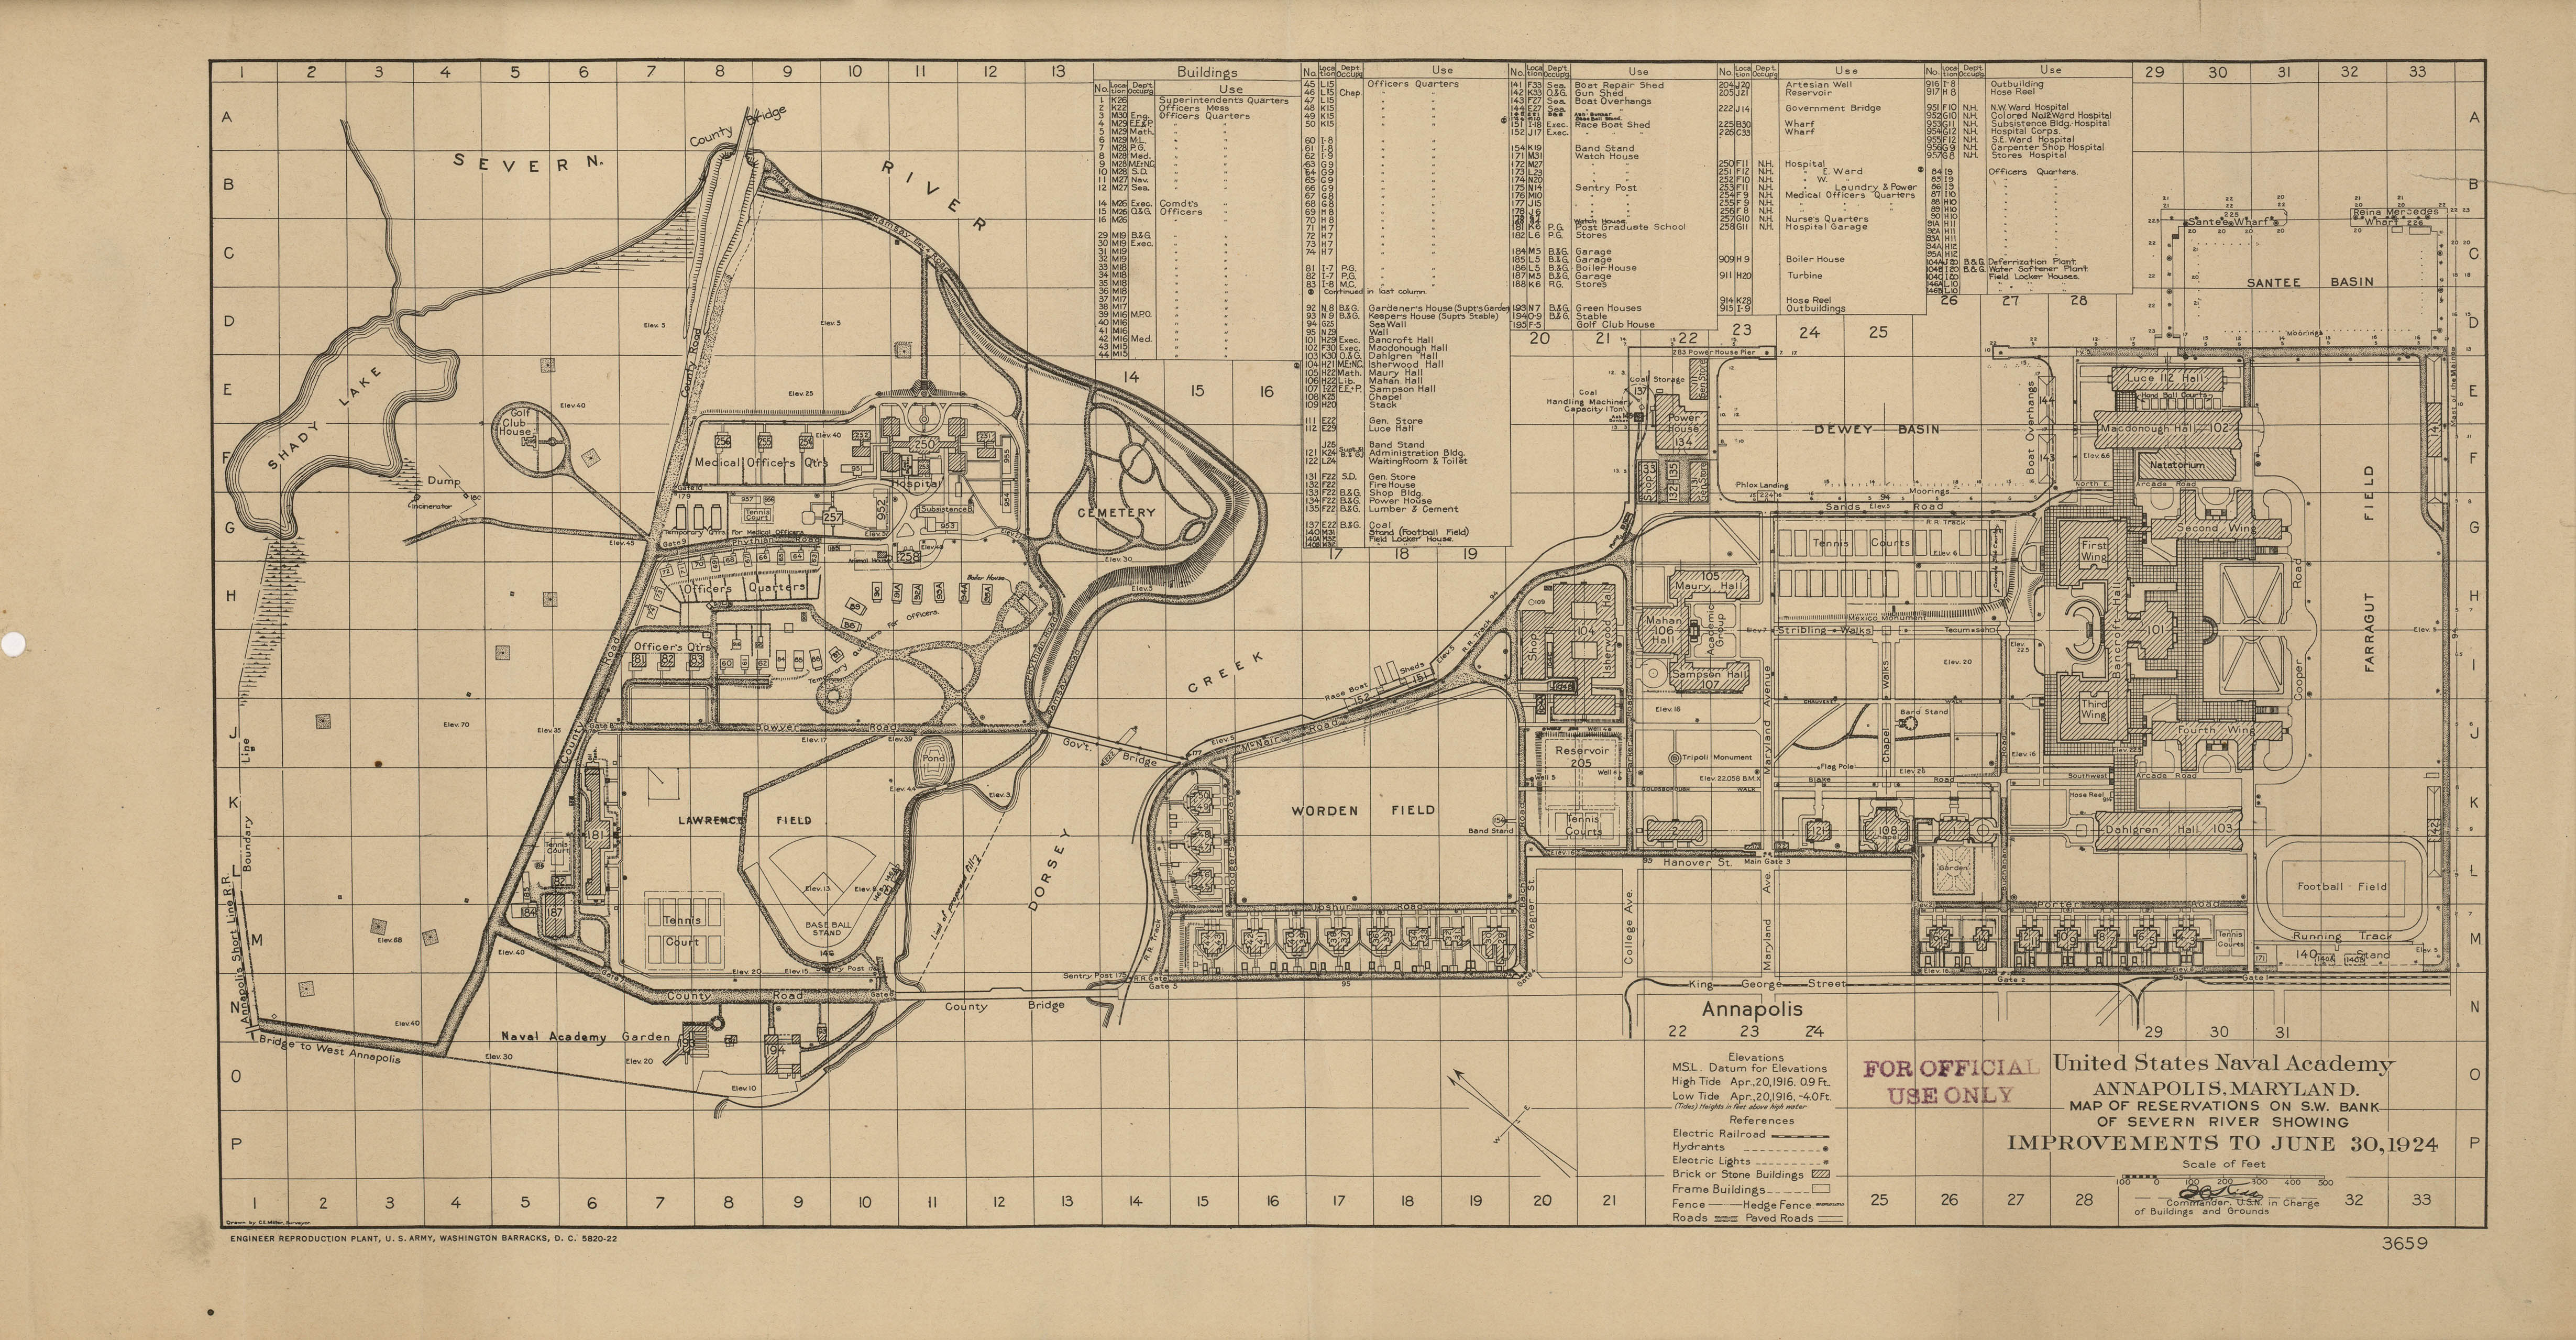 Map of the United States Naval Academy, Annapolis, Maryland 1924